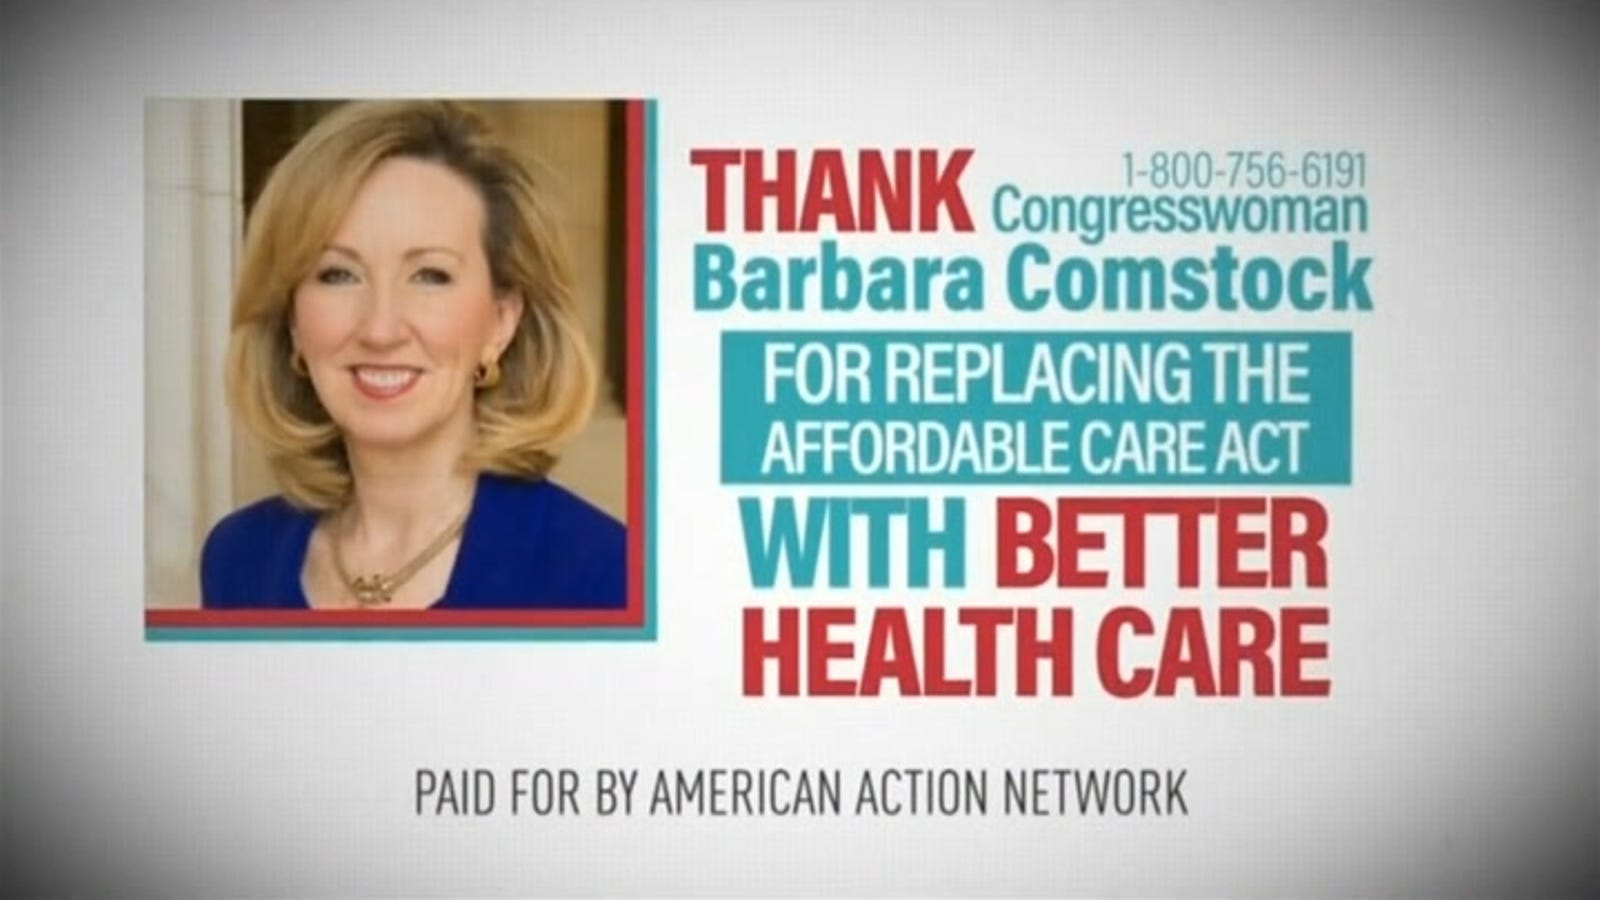 Basketball Fans Treated To Ads Congratulating Republicans For Repealing Obamacare [UPDATES]